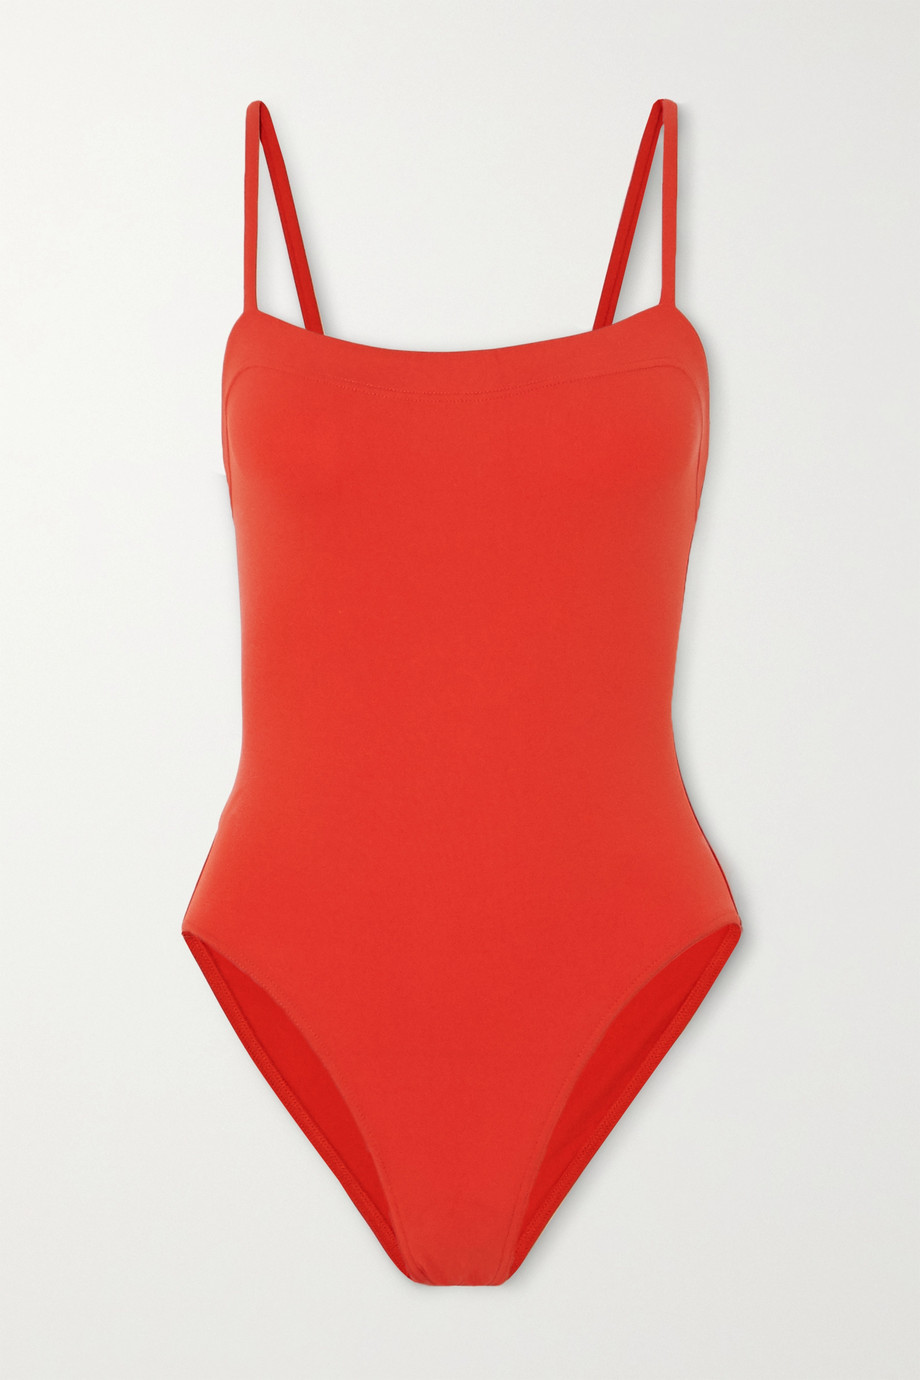 Eres Les Essentials Aquarelle swimsuit